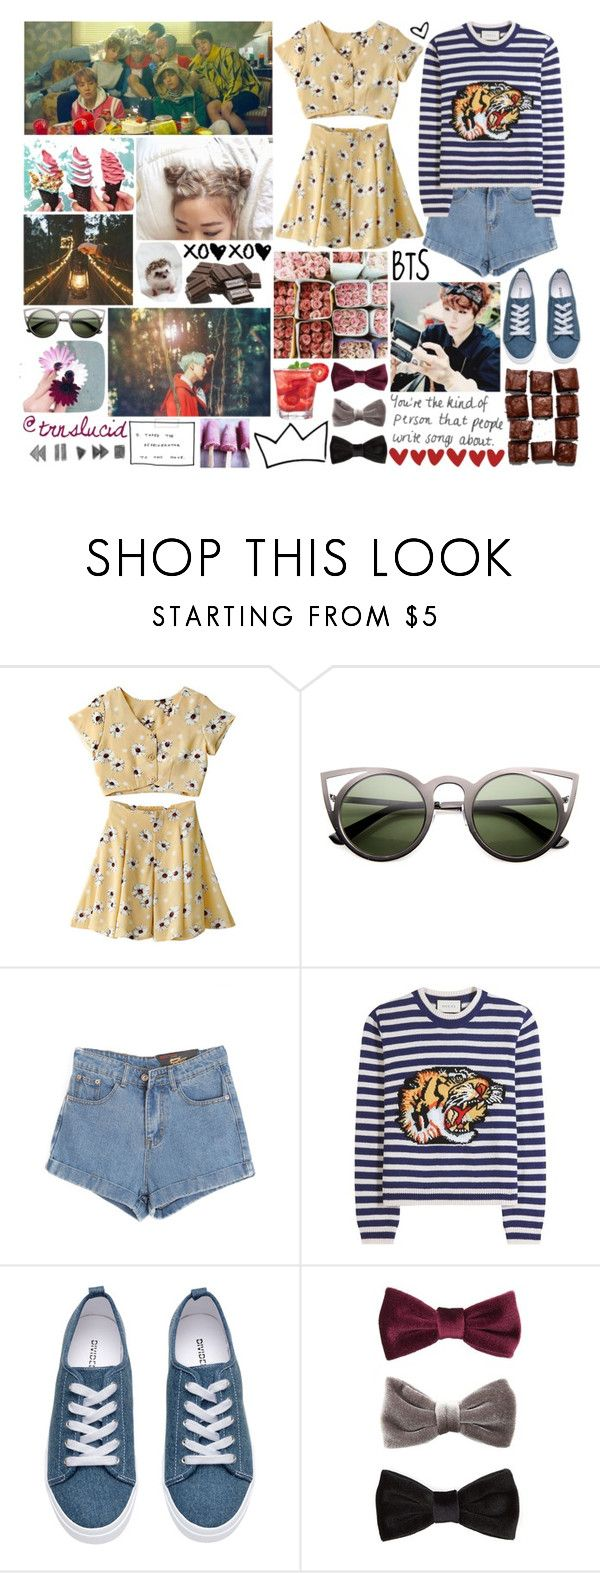 """""""@trnslucid!!"""" by kristinberchak ❤ liked on Polyvore featuring beauty, GET LOST, ZeroUV, Chicnova Fashion, Gucci and H&M"""